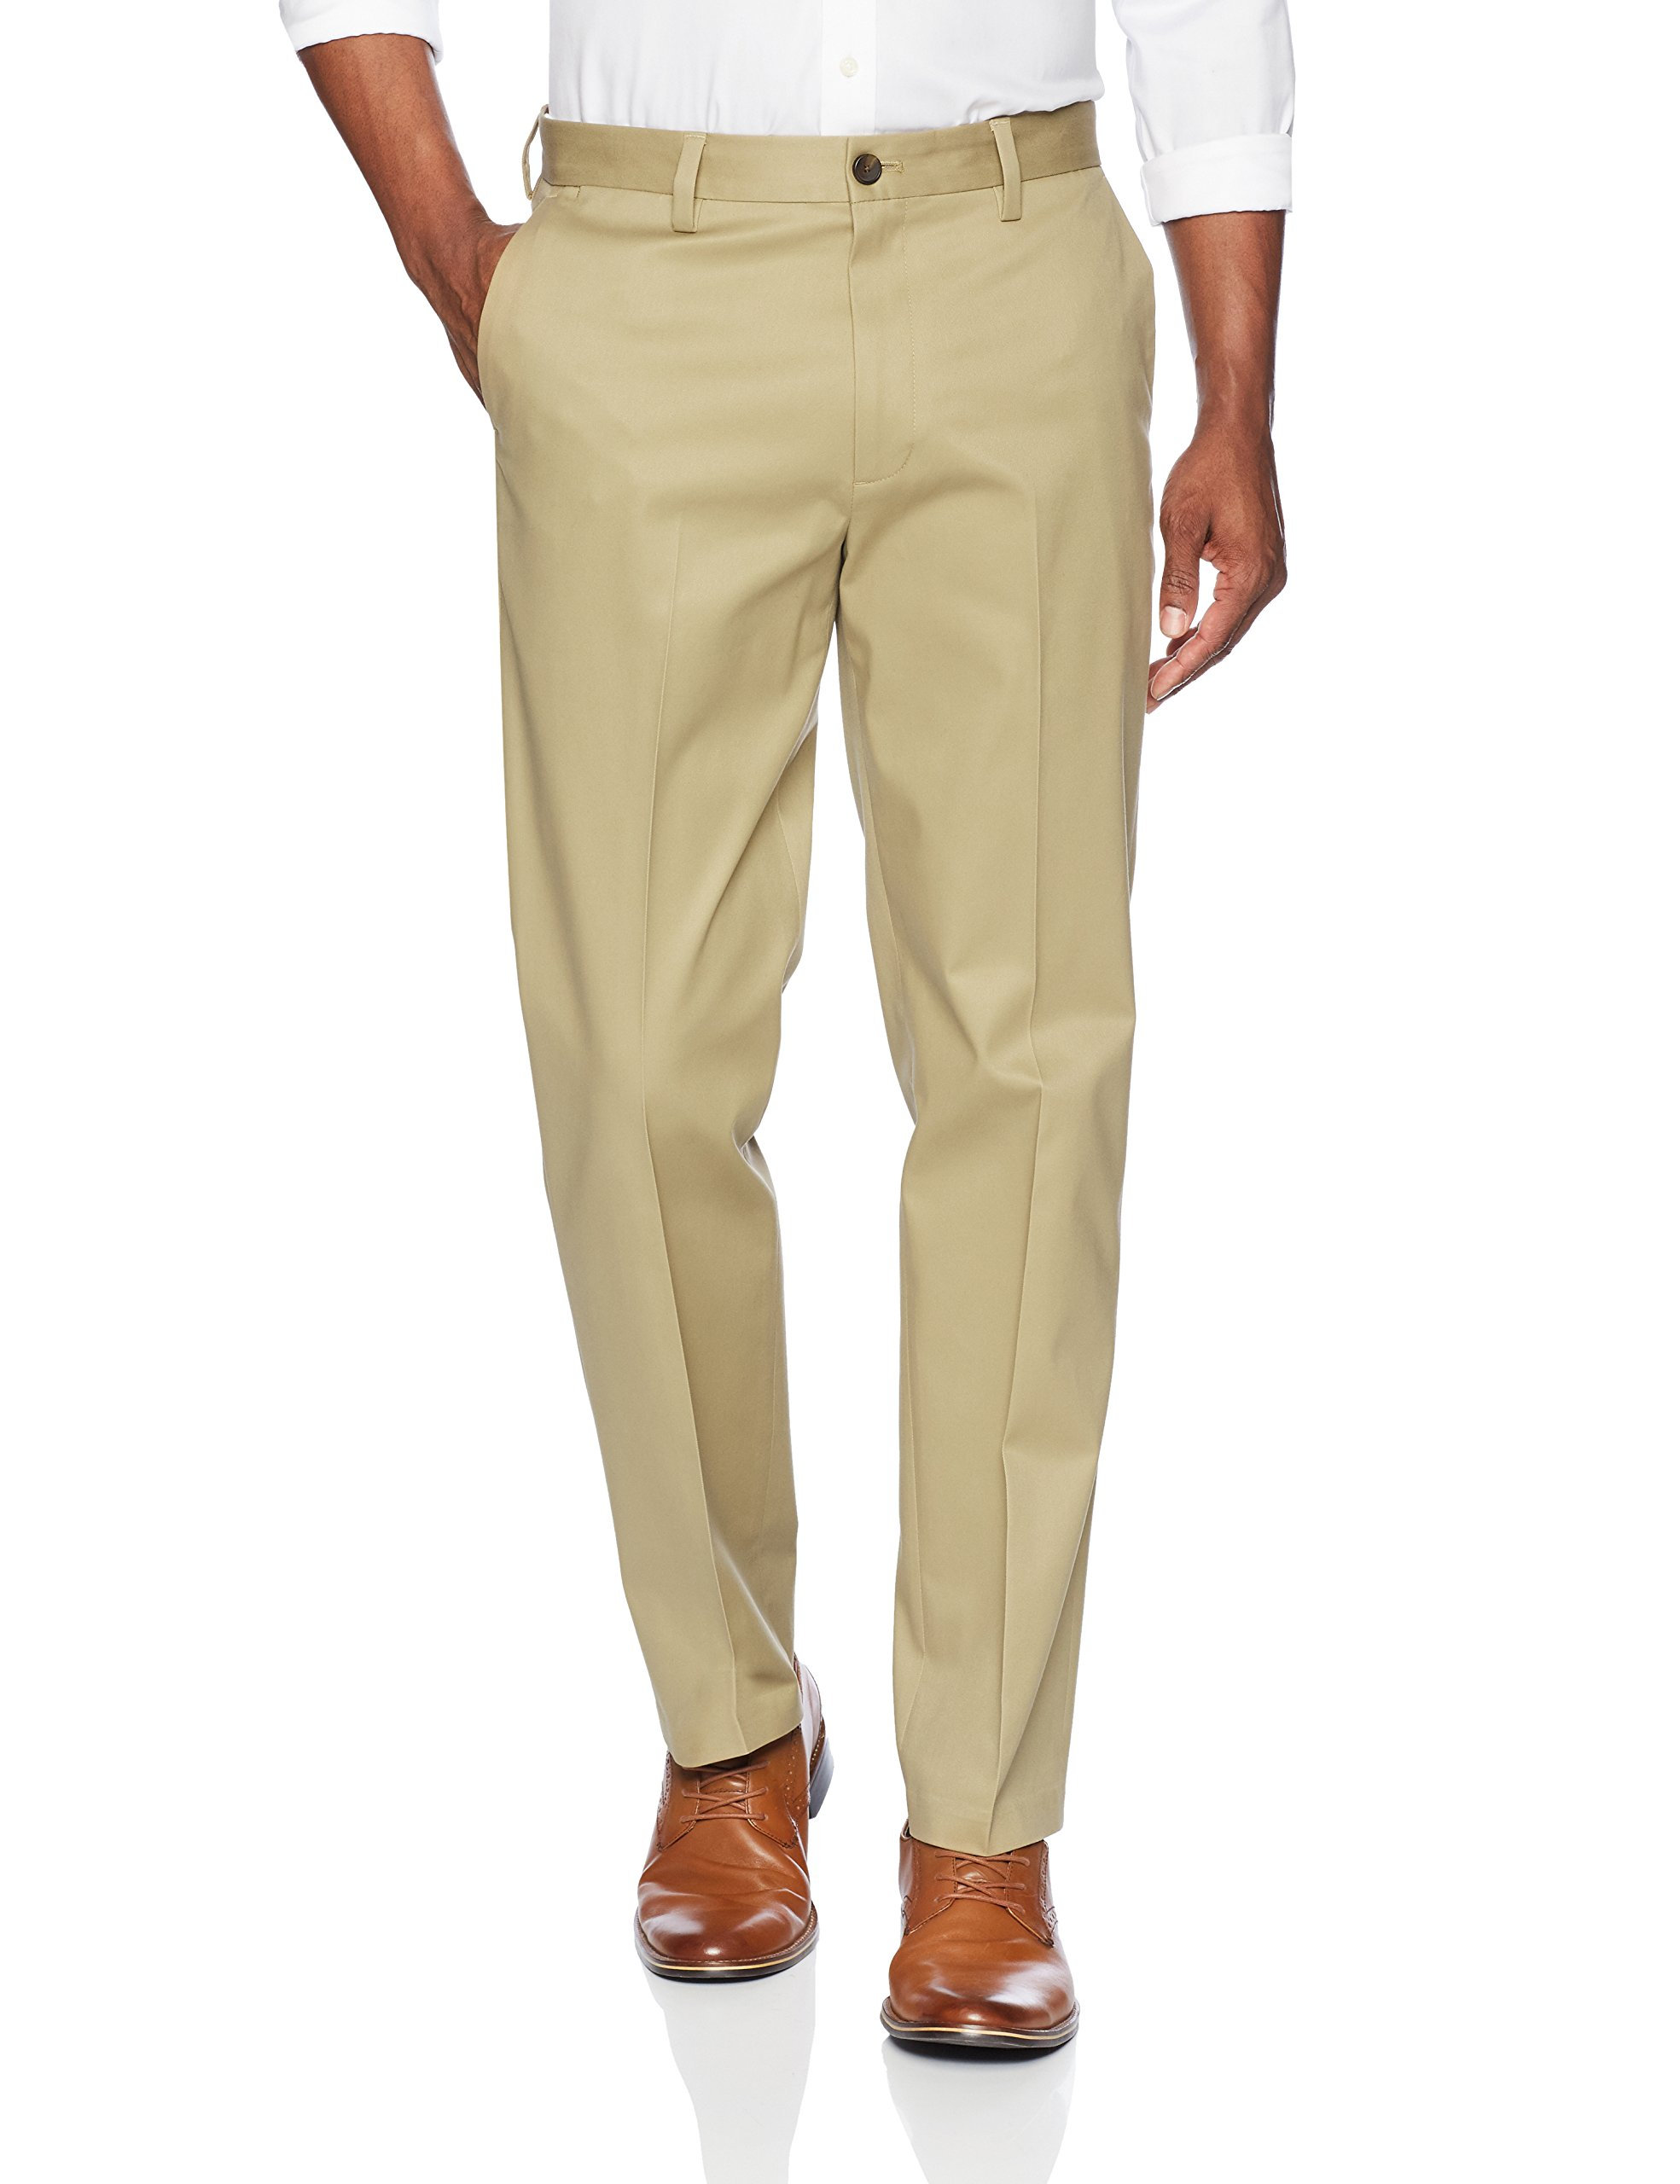 Buttoned Down Men's Relaxed Fit Flat Front Stretch Non-Iron Dress Chino Pant, Wheat, 40W x 34L